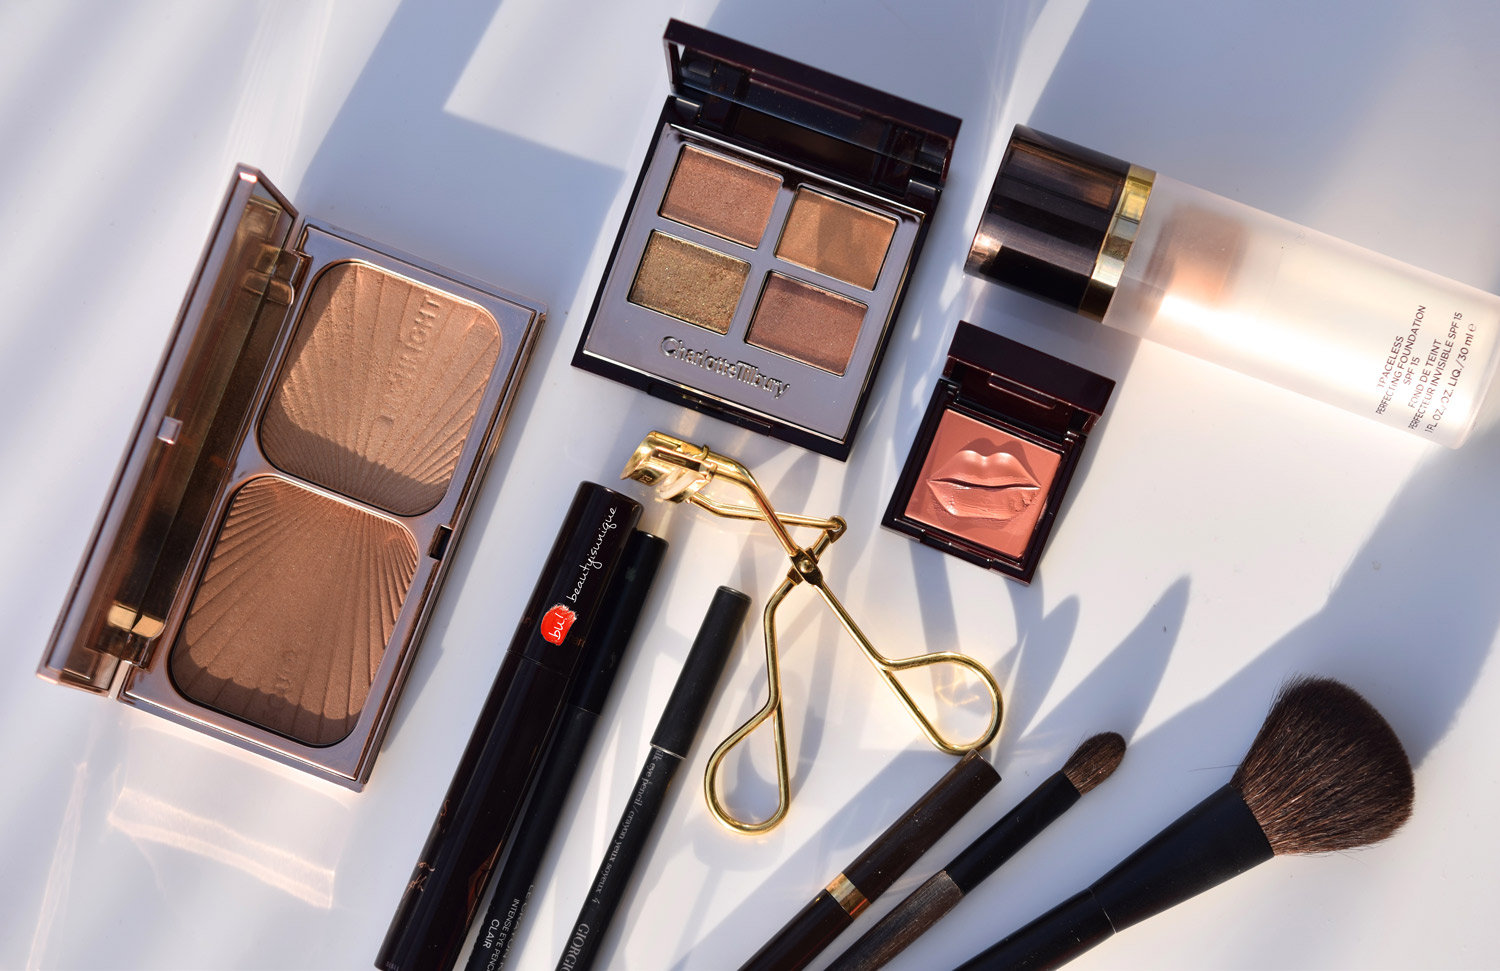 Charlotte-tilbury-the-legendary-muse-make-up